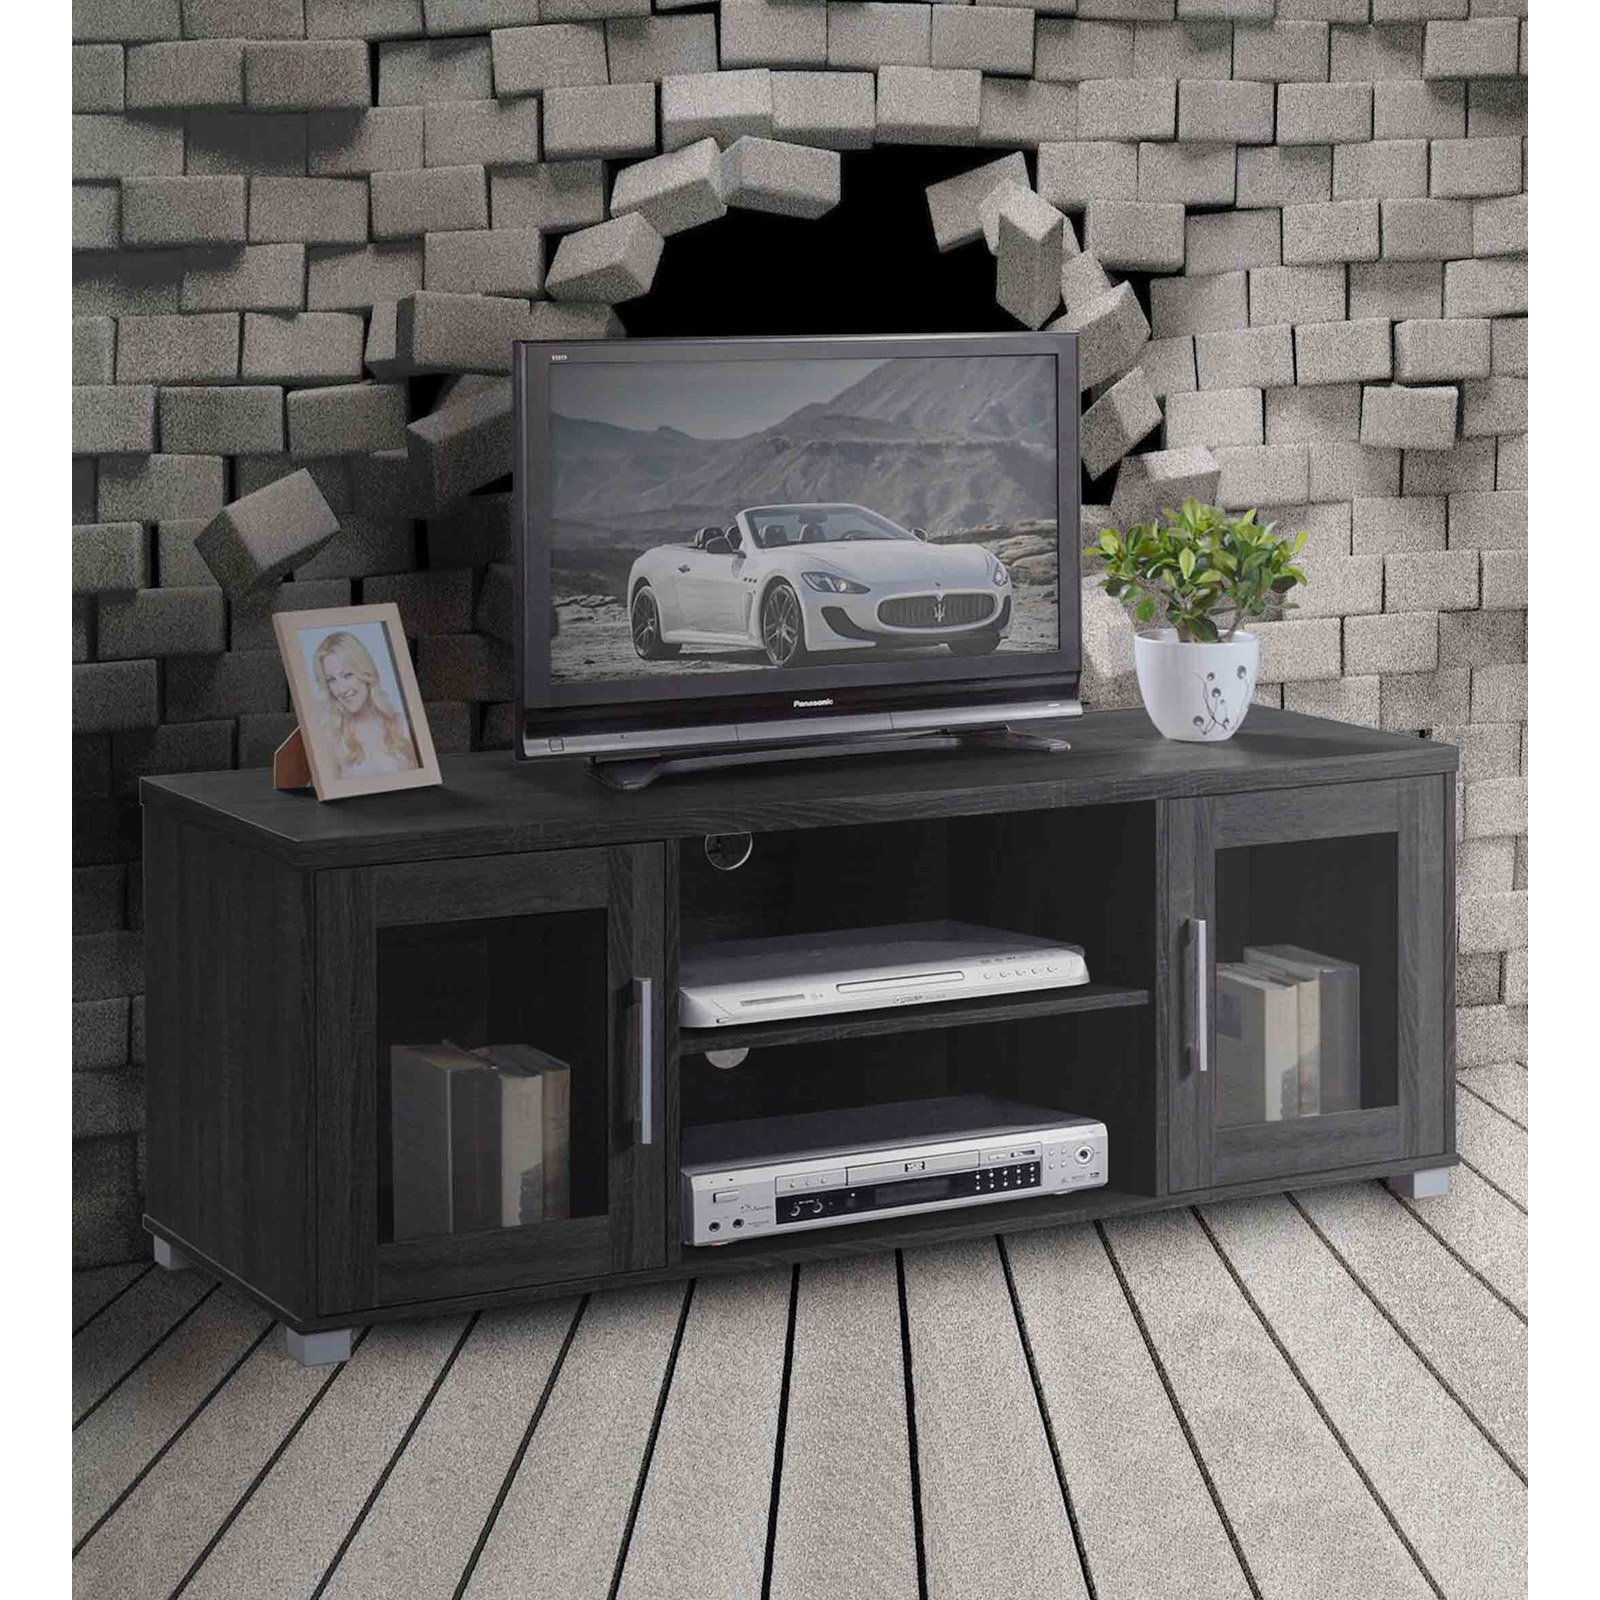 Hodedah Imports Entertainment Unit with Glass Doors - Black